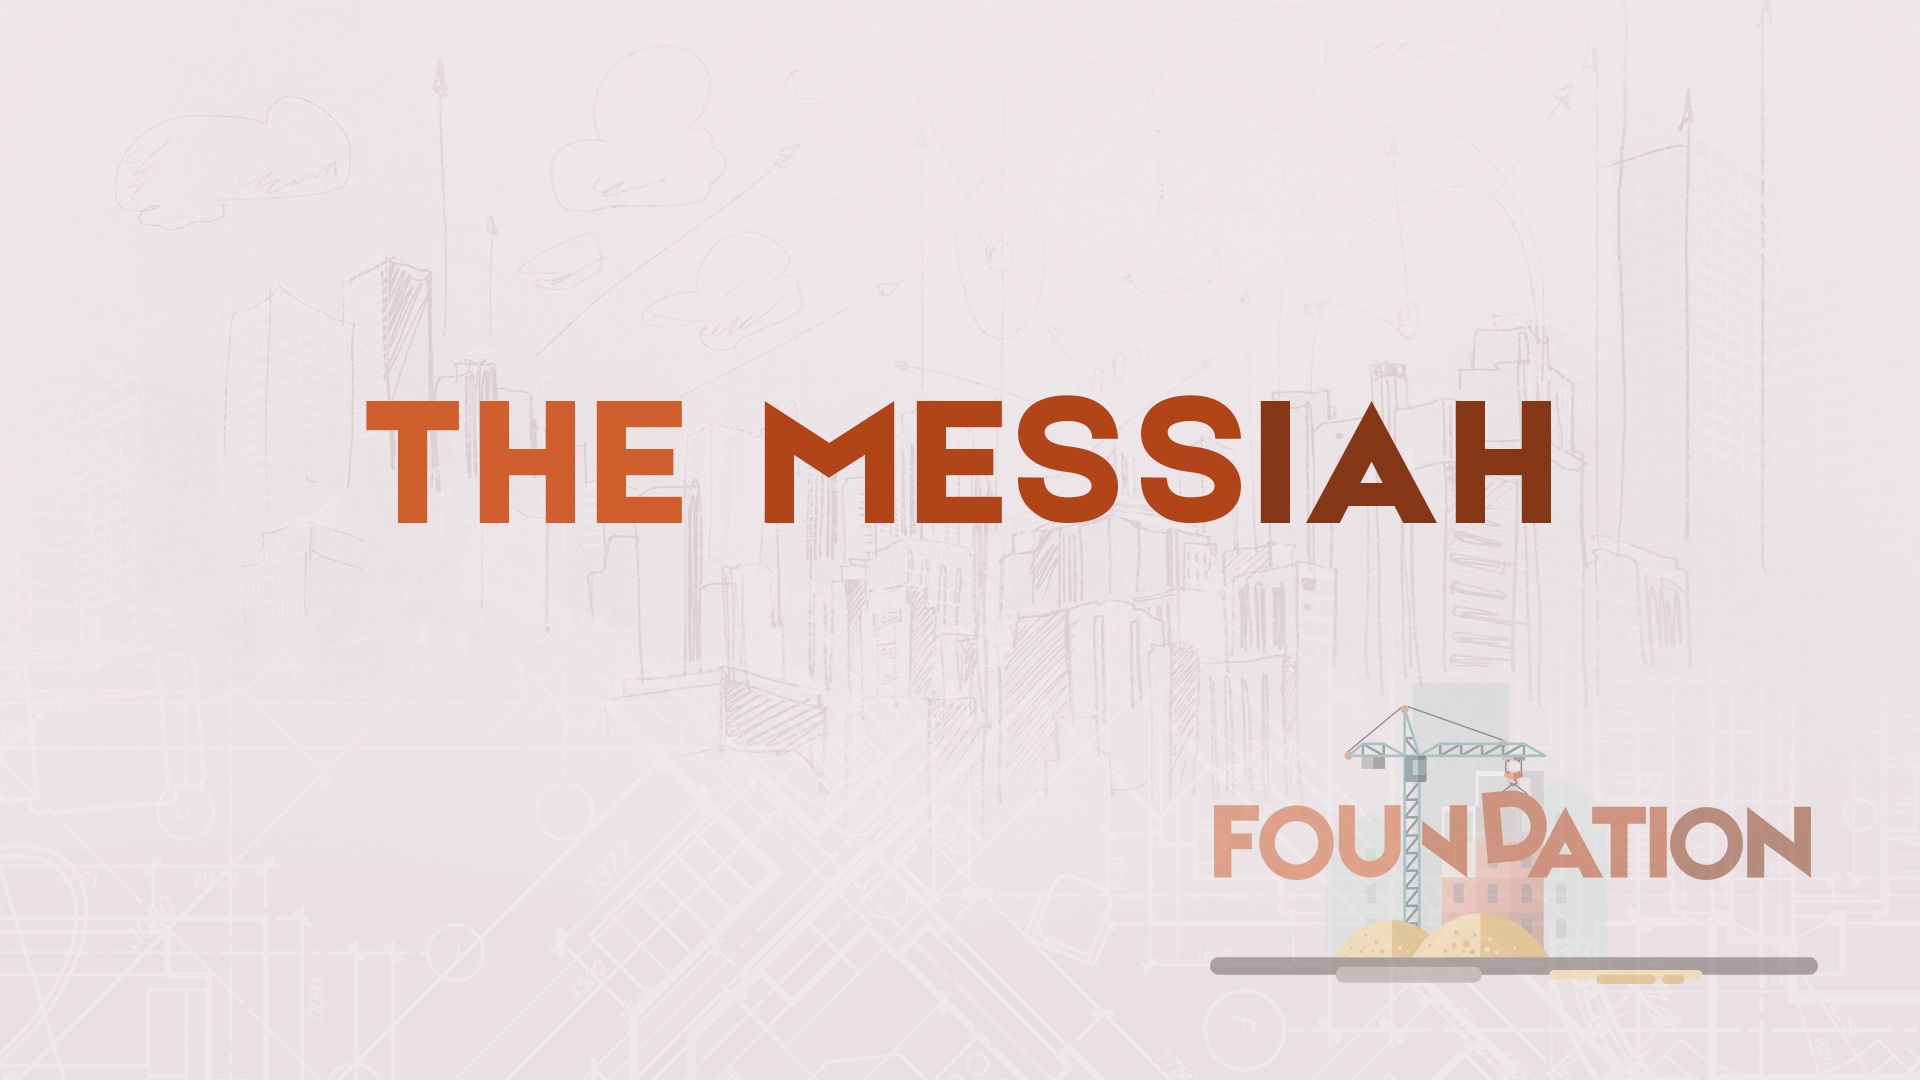 Foundation: The Messiah